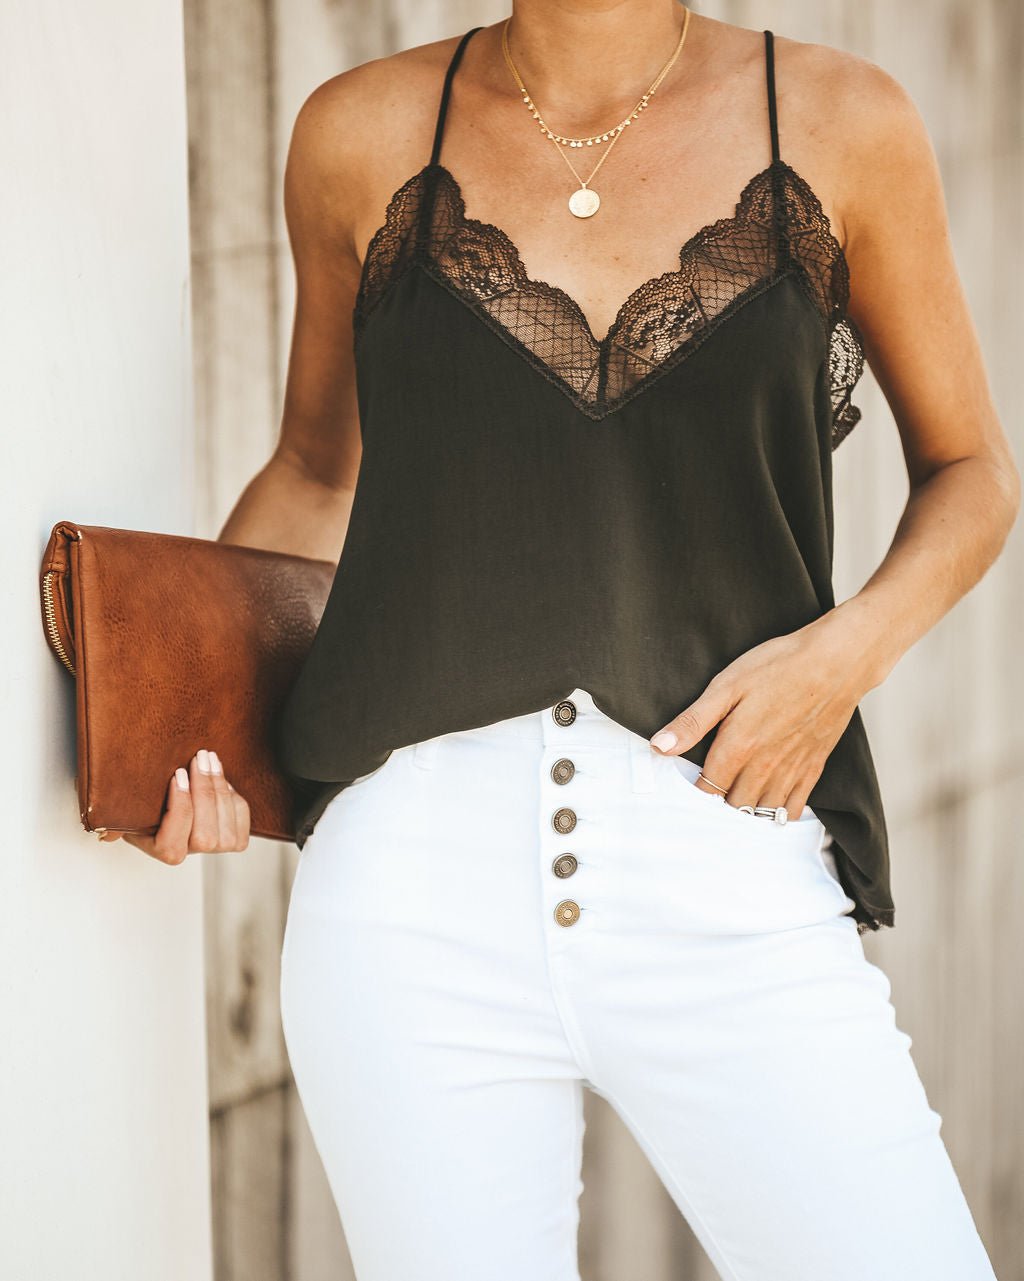 698024b5e02f5 Detail Product. ← Home - NEW ARRIVALS - Delicate Balance Lace Cami Tank ...